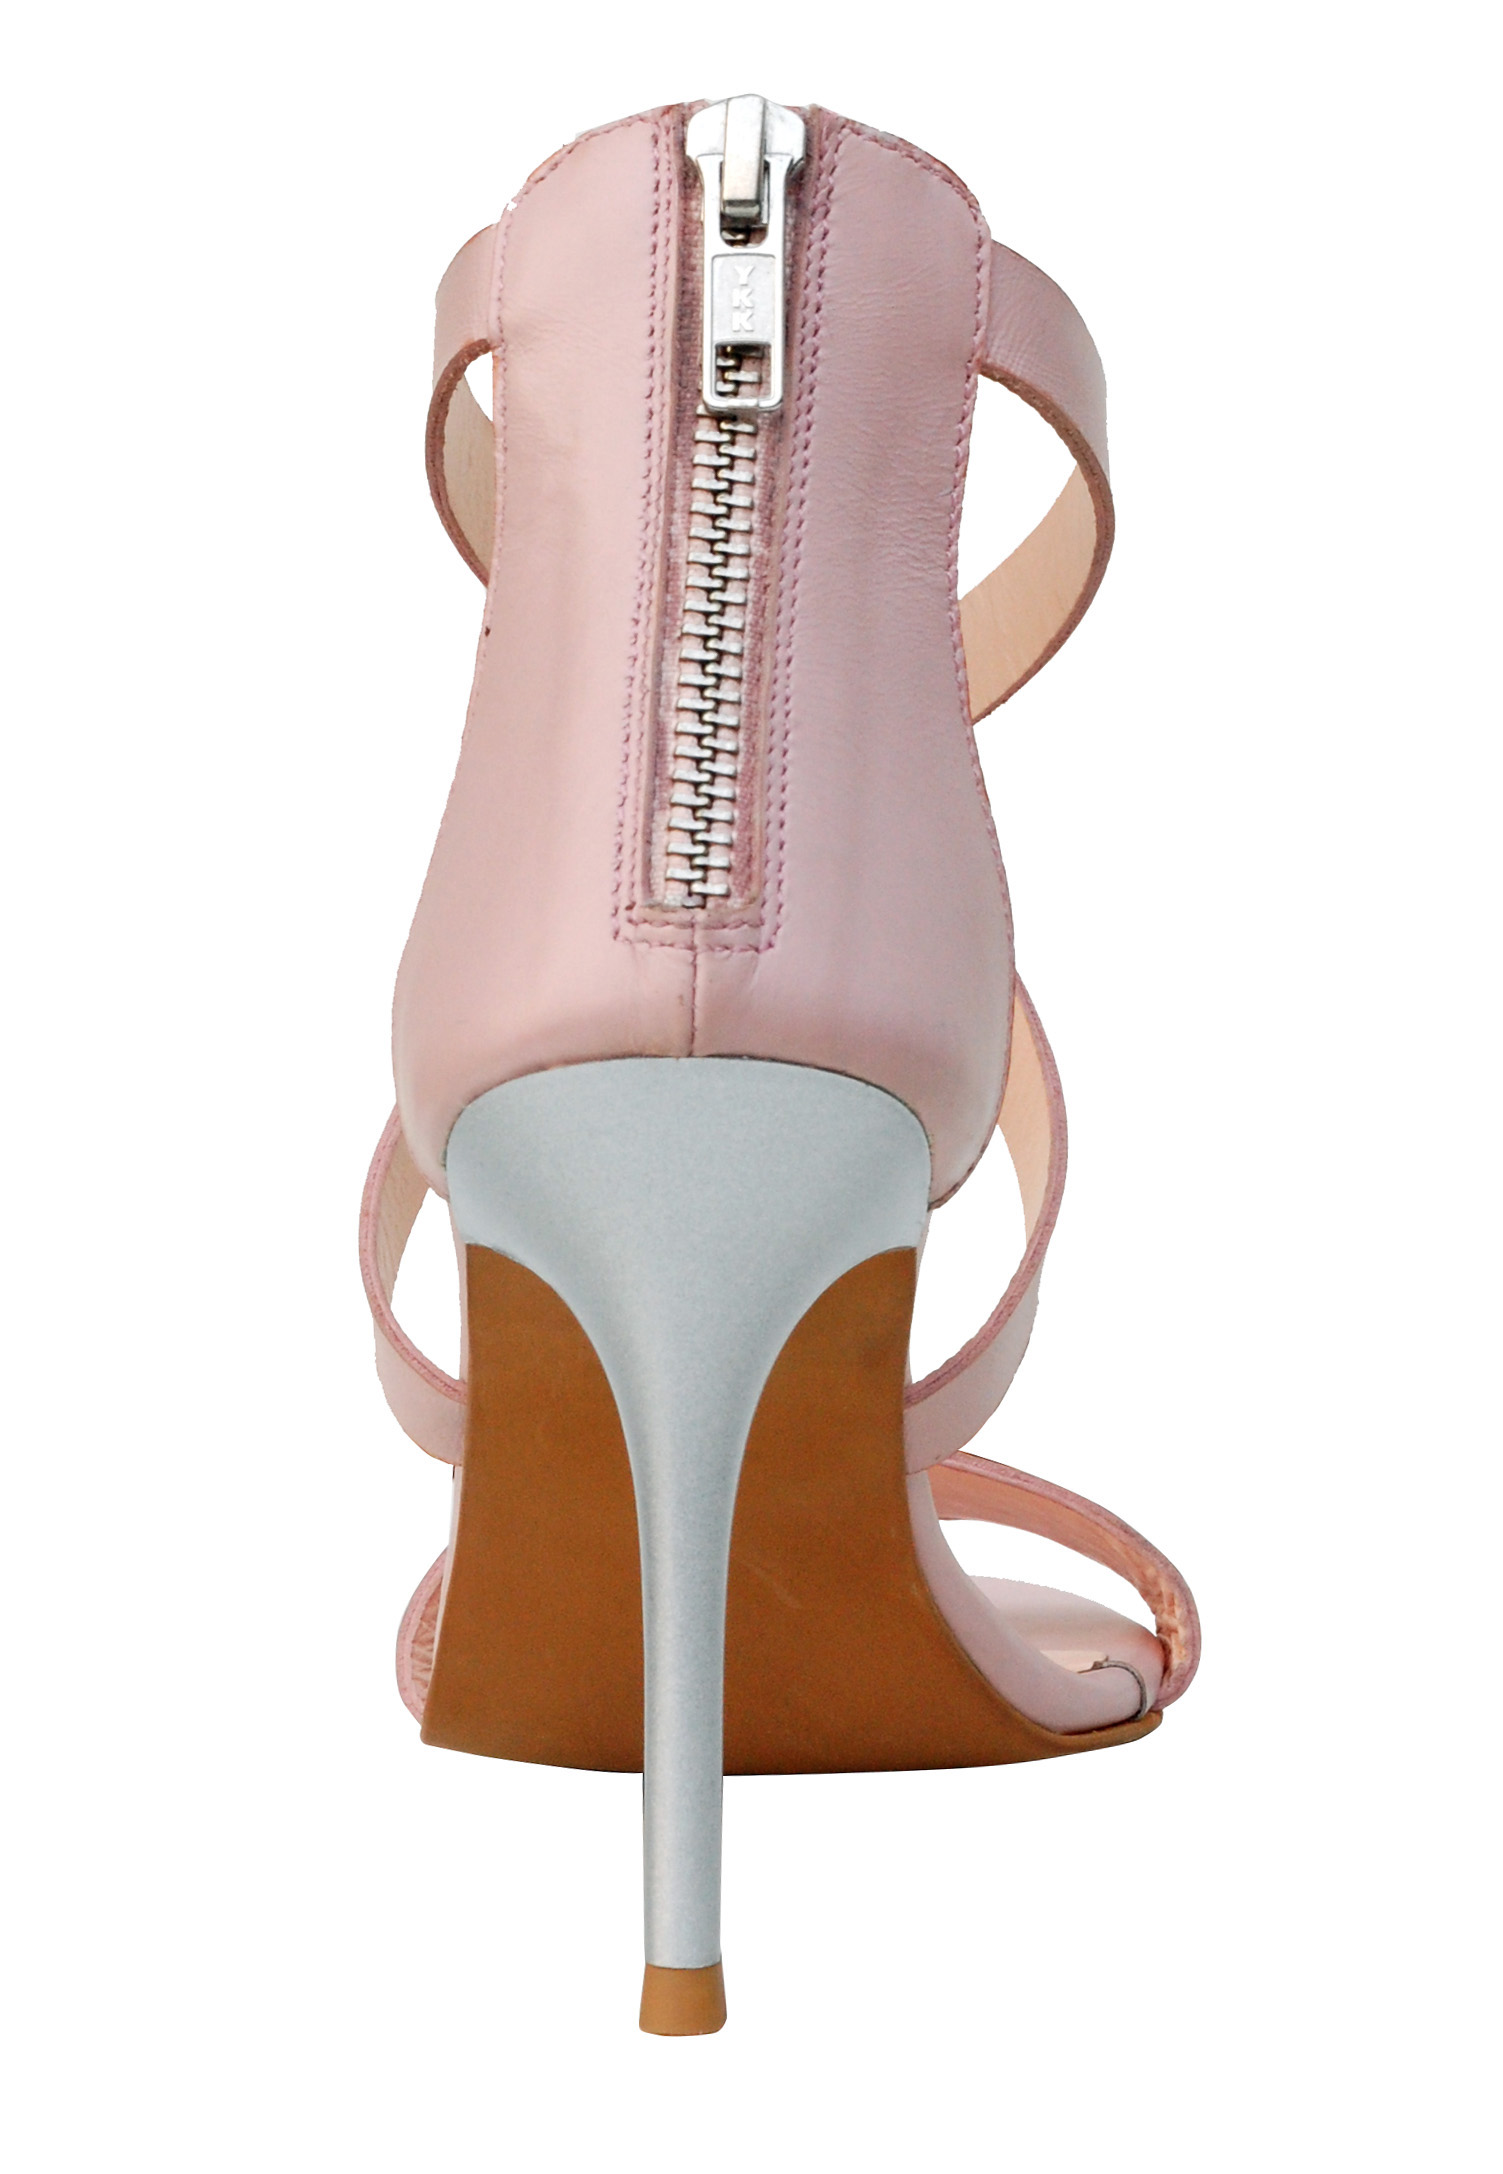 Delightful pink leather stilletto